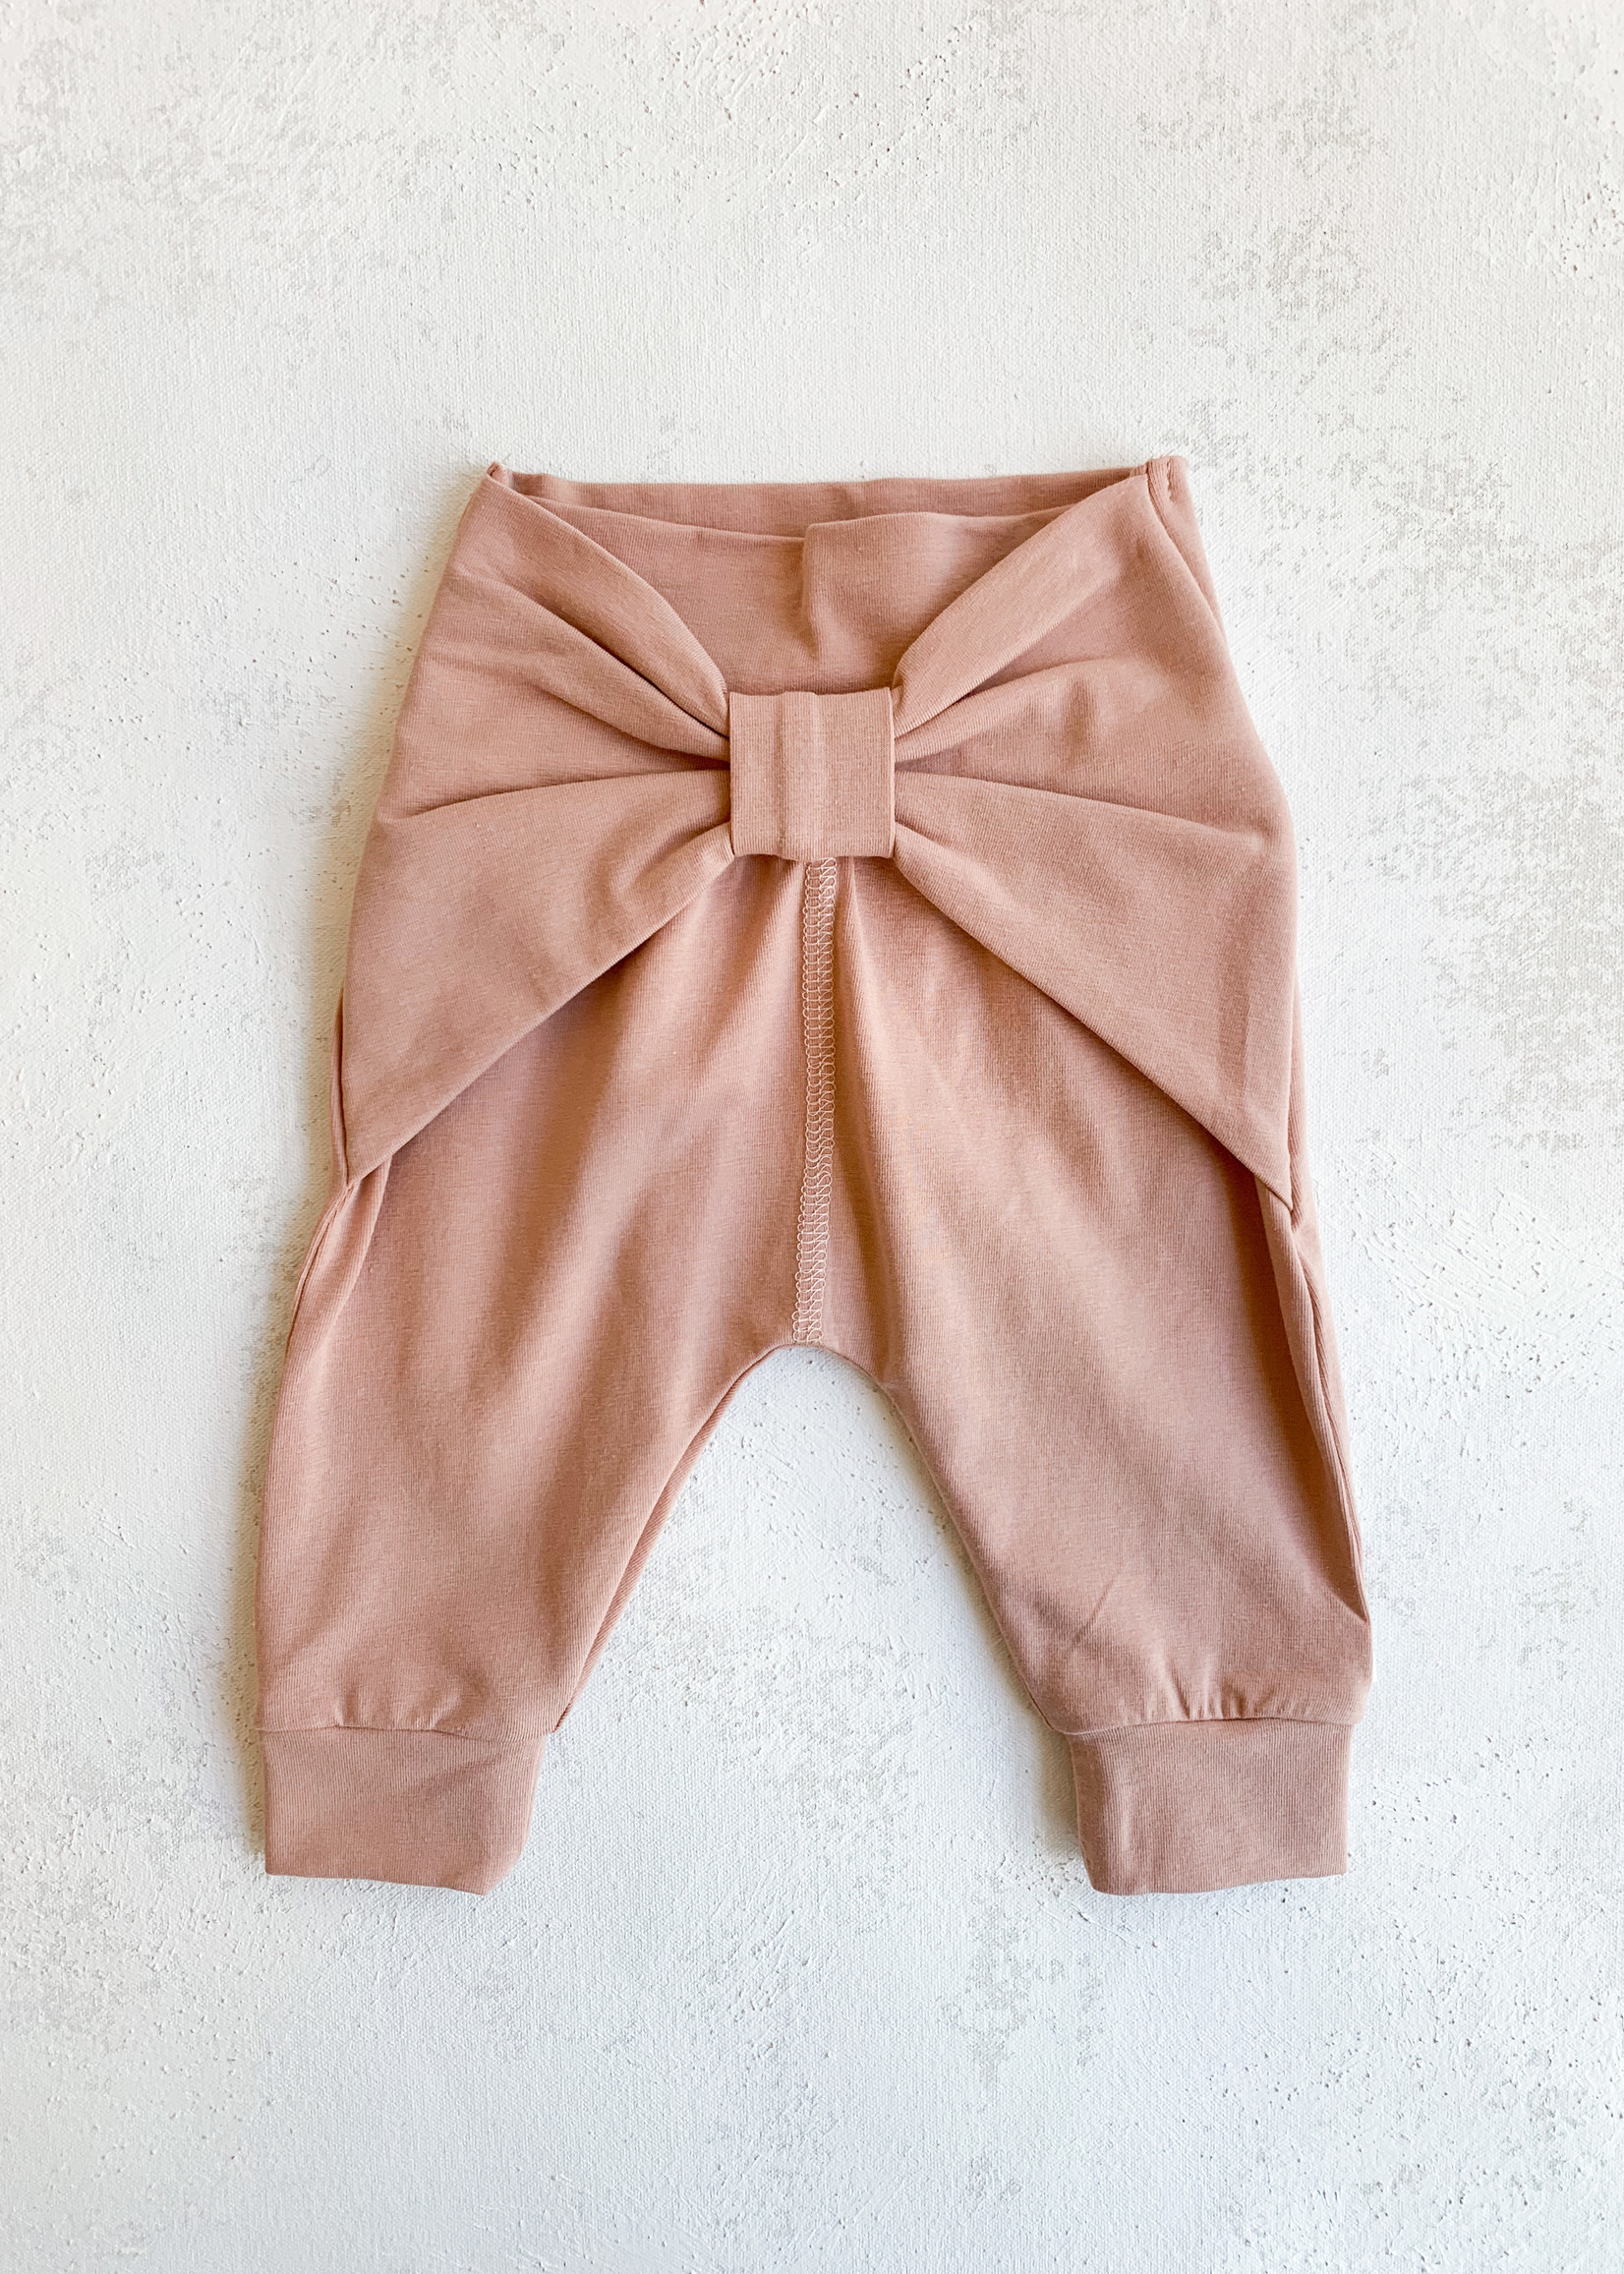 Elitaire Petite Knot Pant in Dusty Blush